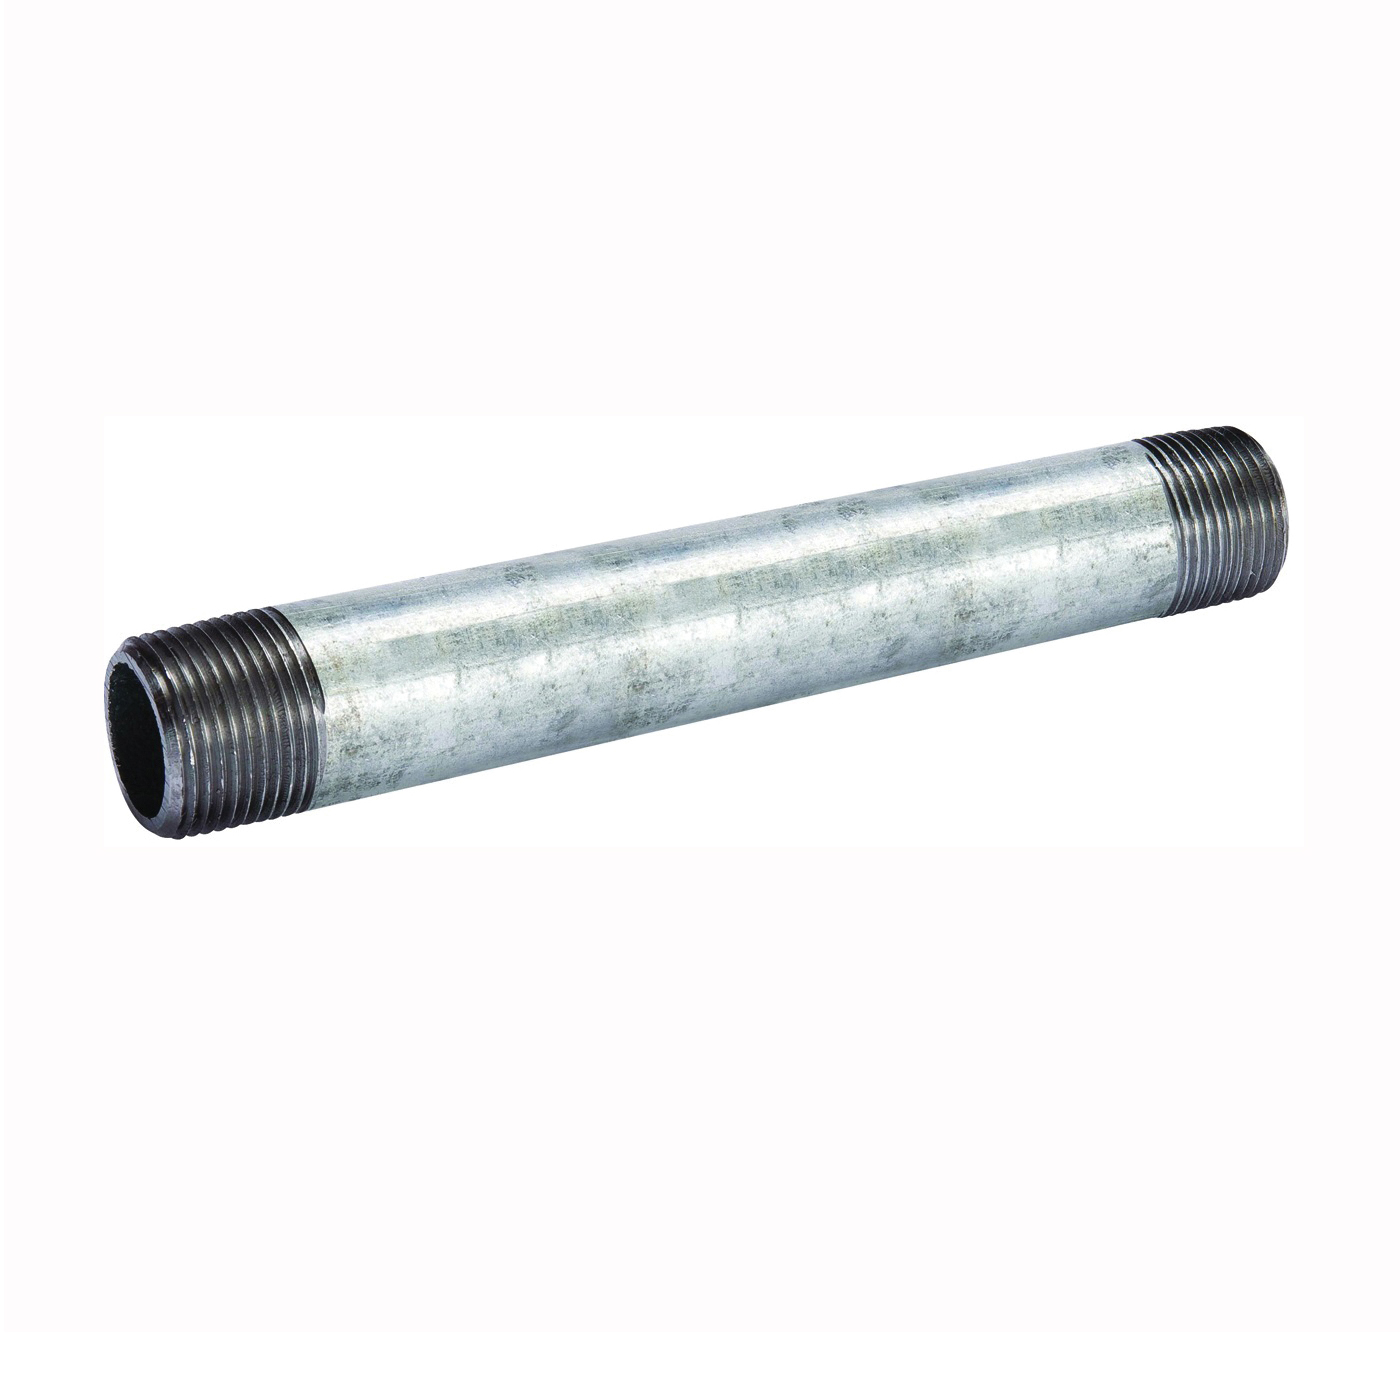 Picture of B & K 570-080BC Pipe Nipple, 3 in, Threaded, Galvanized Steel, SCH 40 Schedule, 8 in L